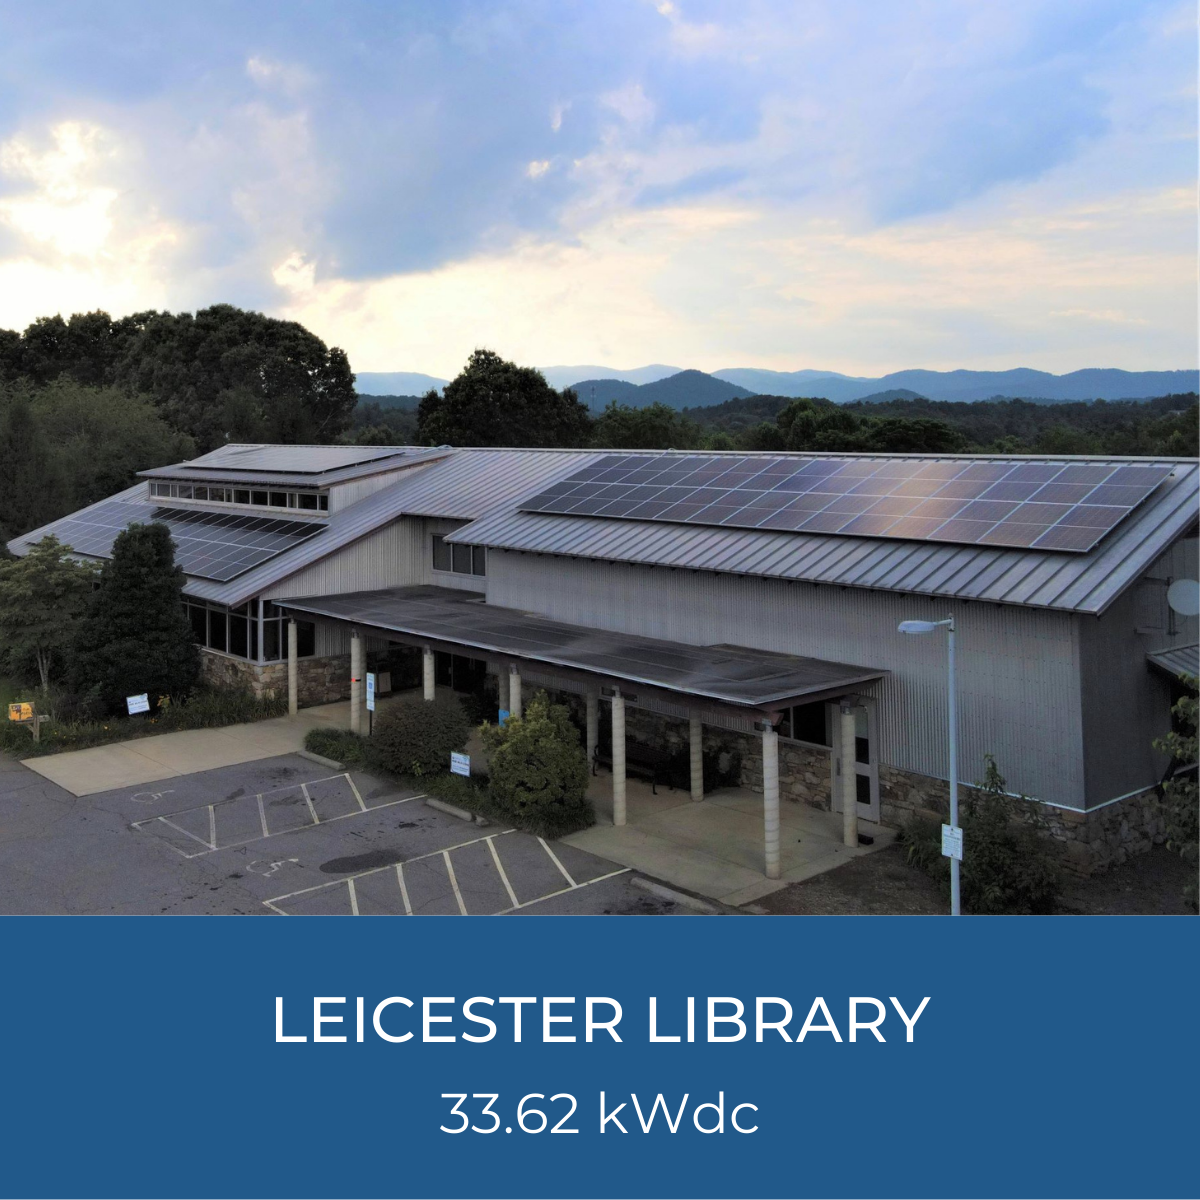 Image of Leicester Library Solar Project, 33.62kWdc system